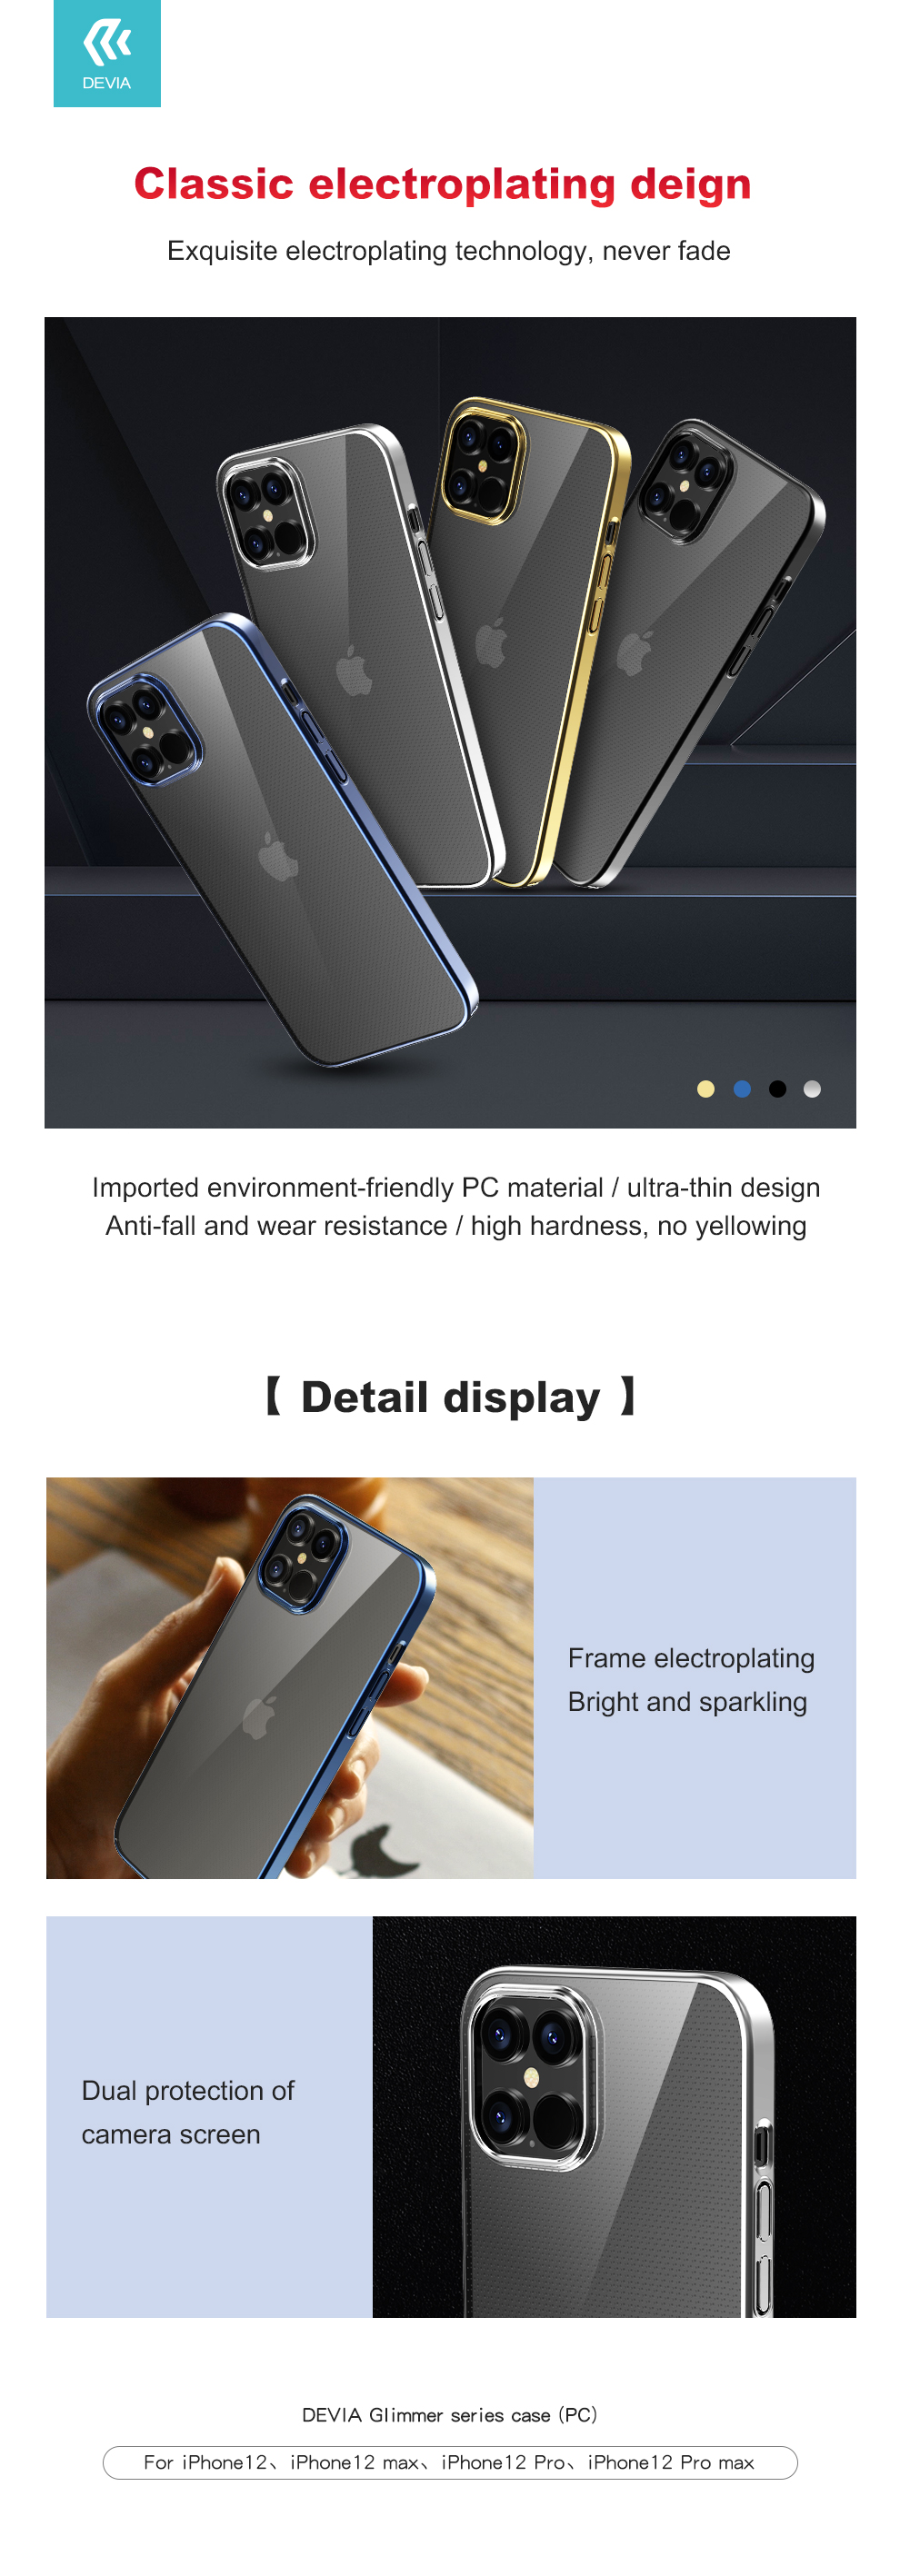 Devia Glimmer series case For iPhone 12, IPhone 12 Max, iPhone 12 Pro and iPhone Pro 12 Max